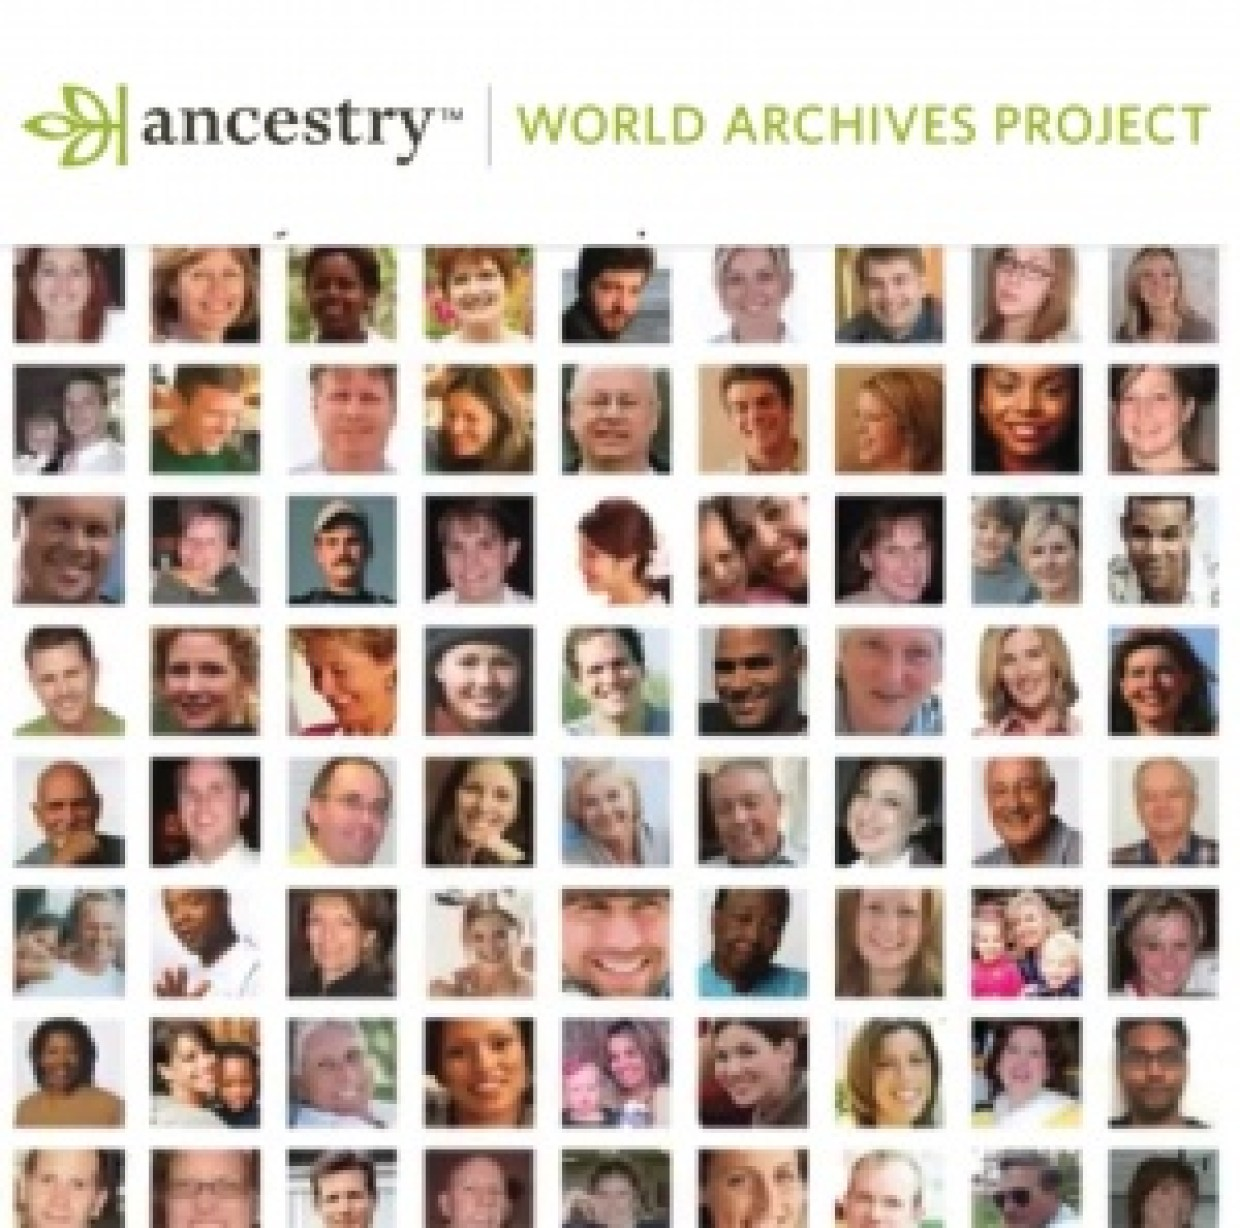 AncestryWorldArchives